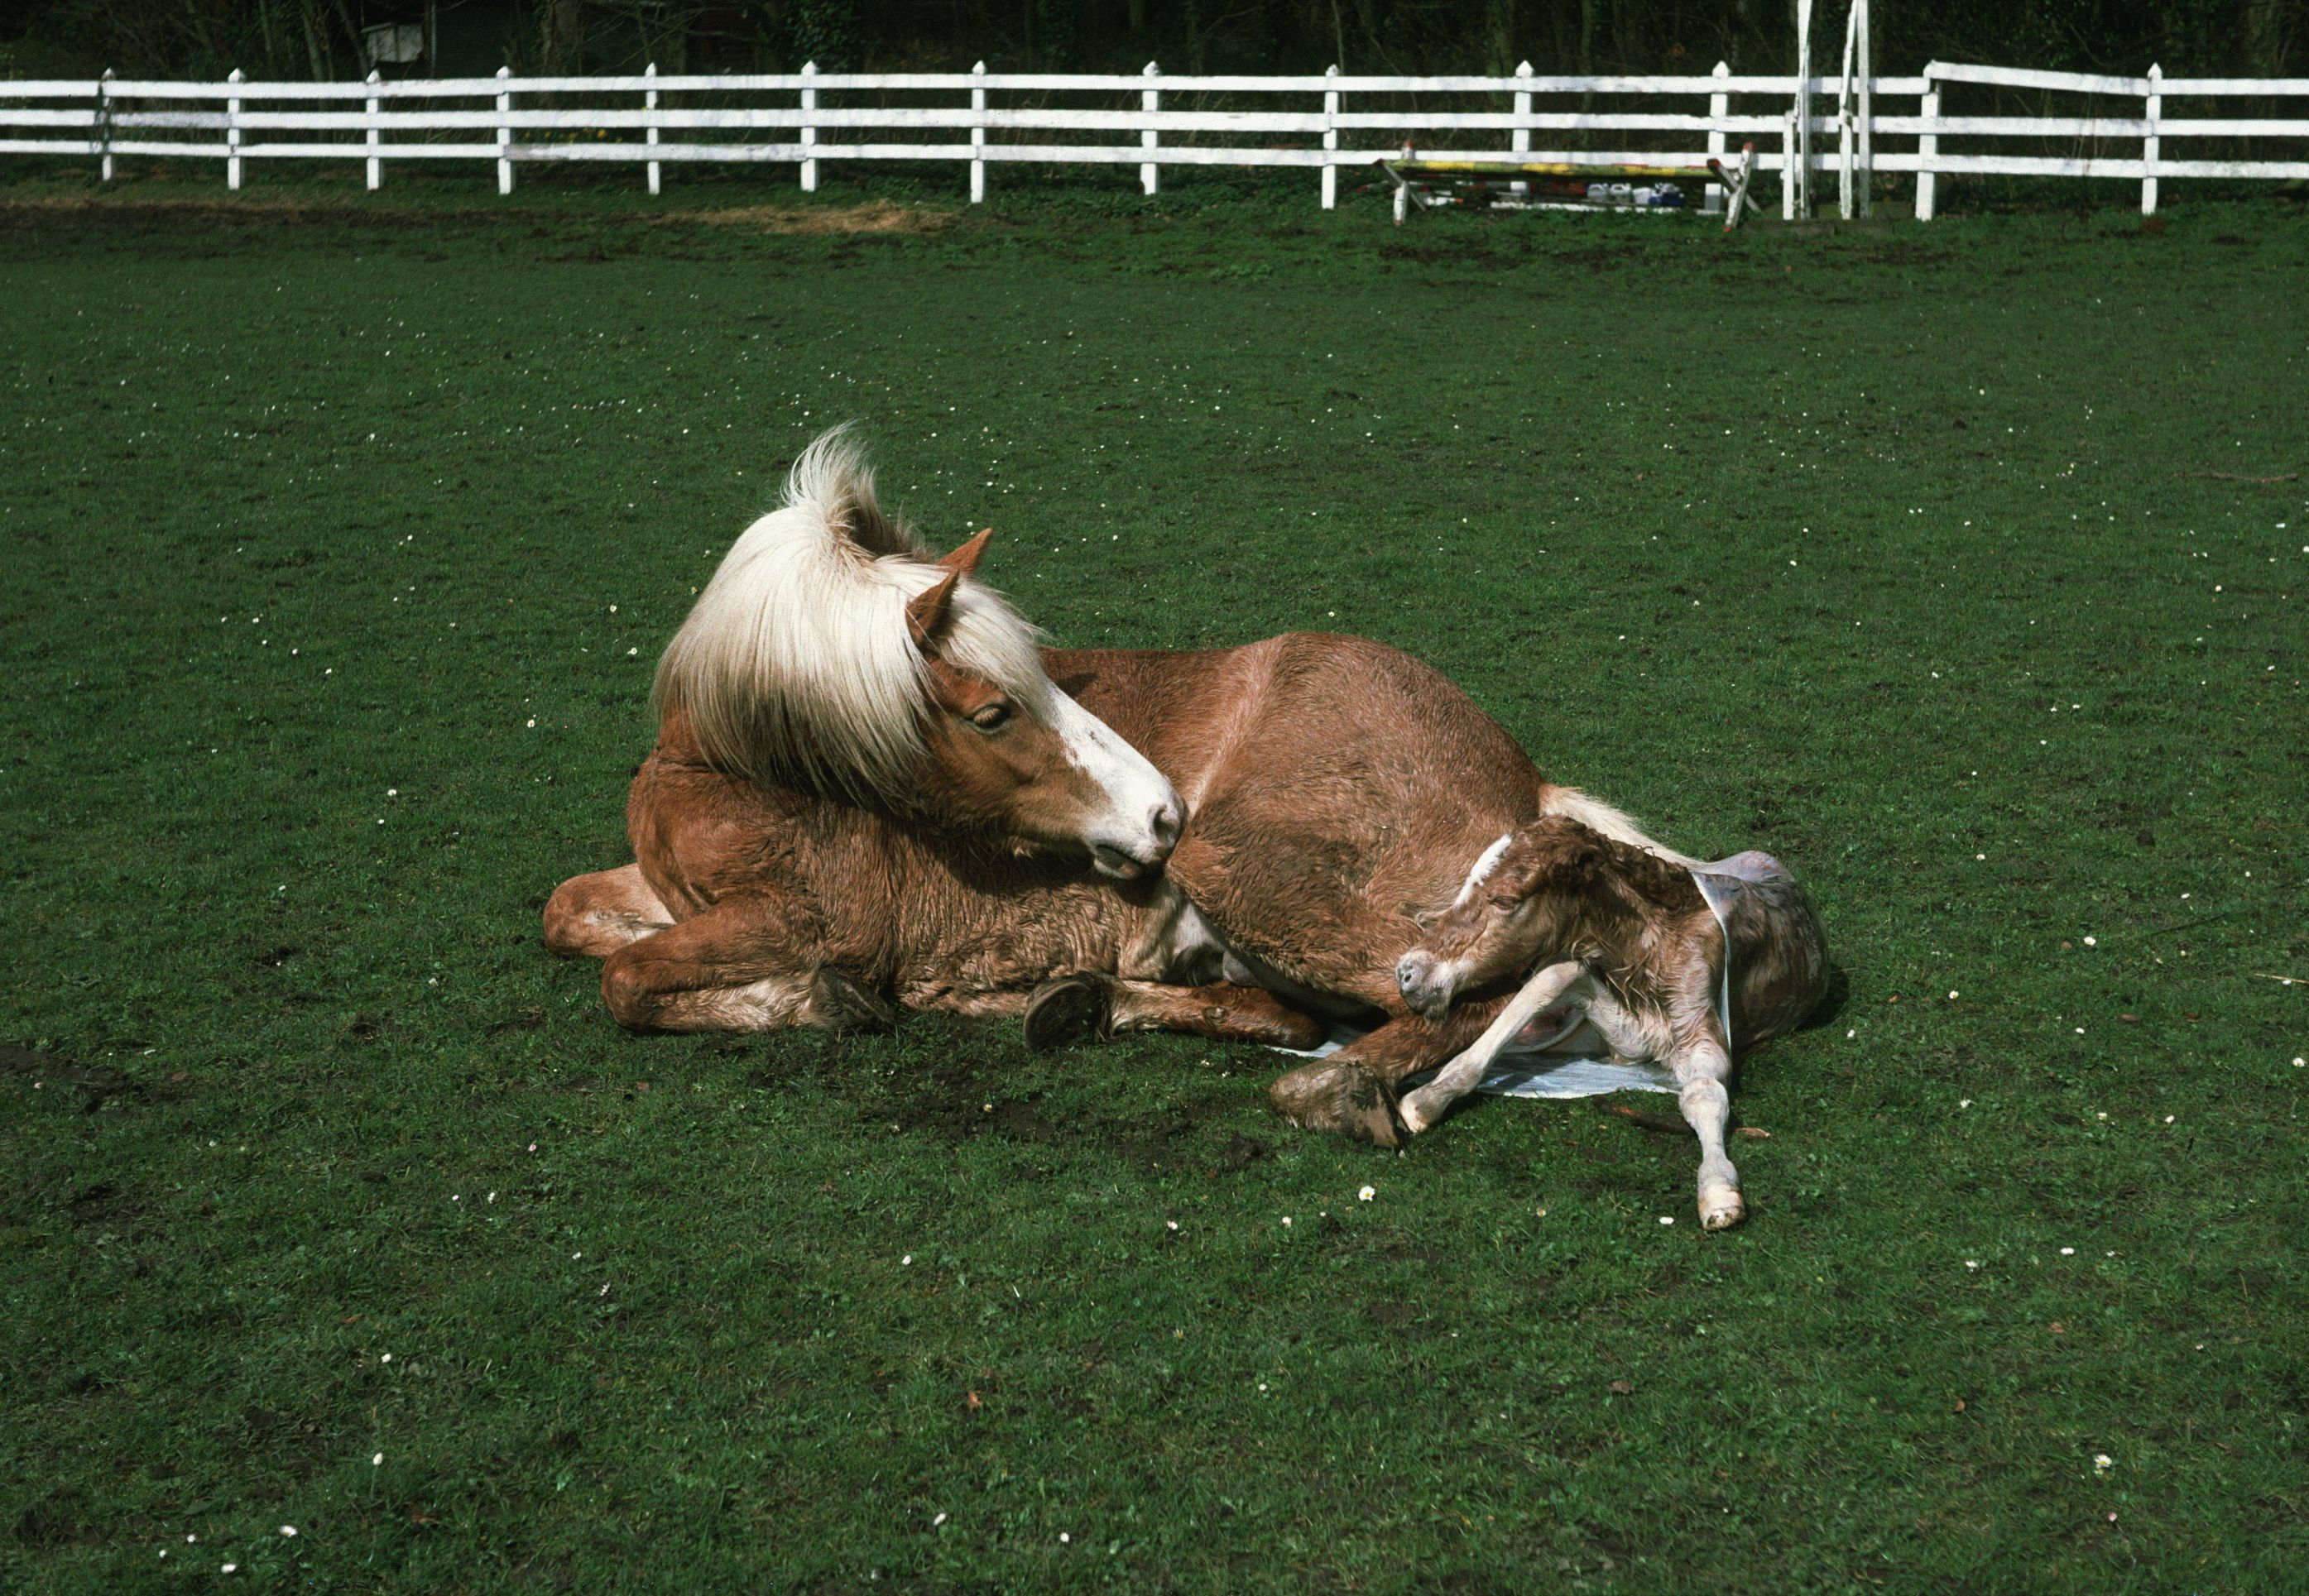 10 Facts About Foals